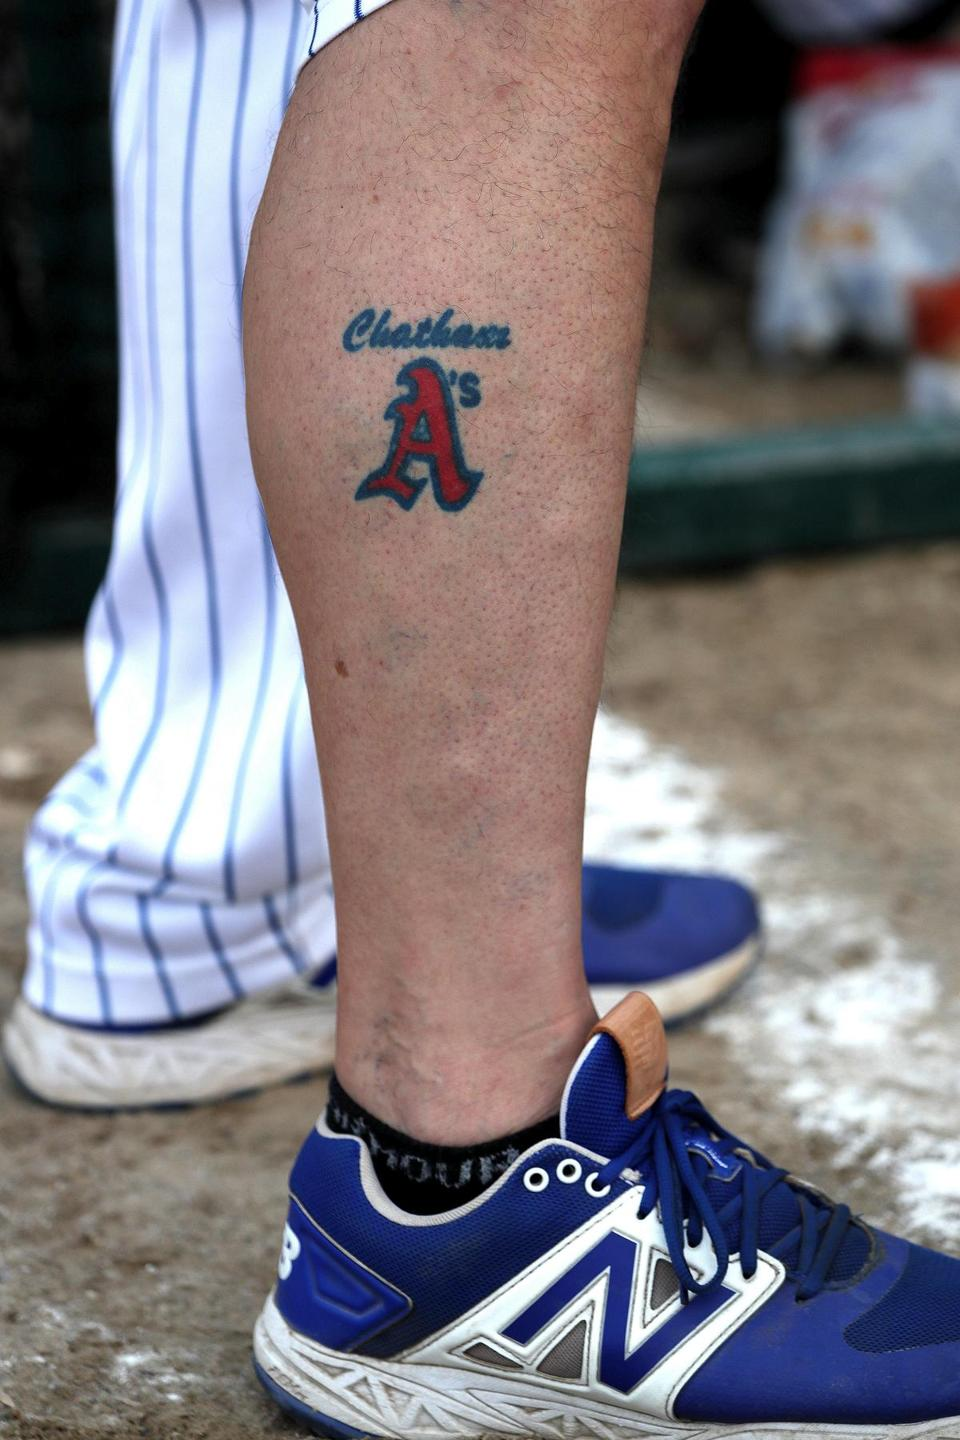 John Schiffner told his team midway through the 1998 season that he would get a tattoo if they made the playoffs. Even better, they won the championship.